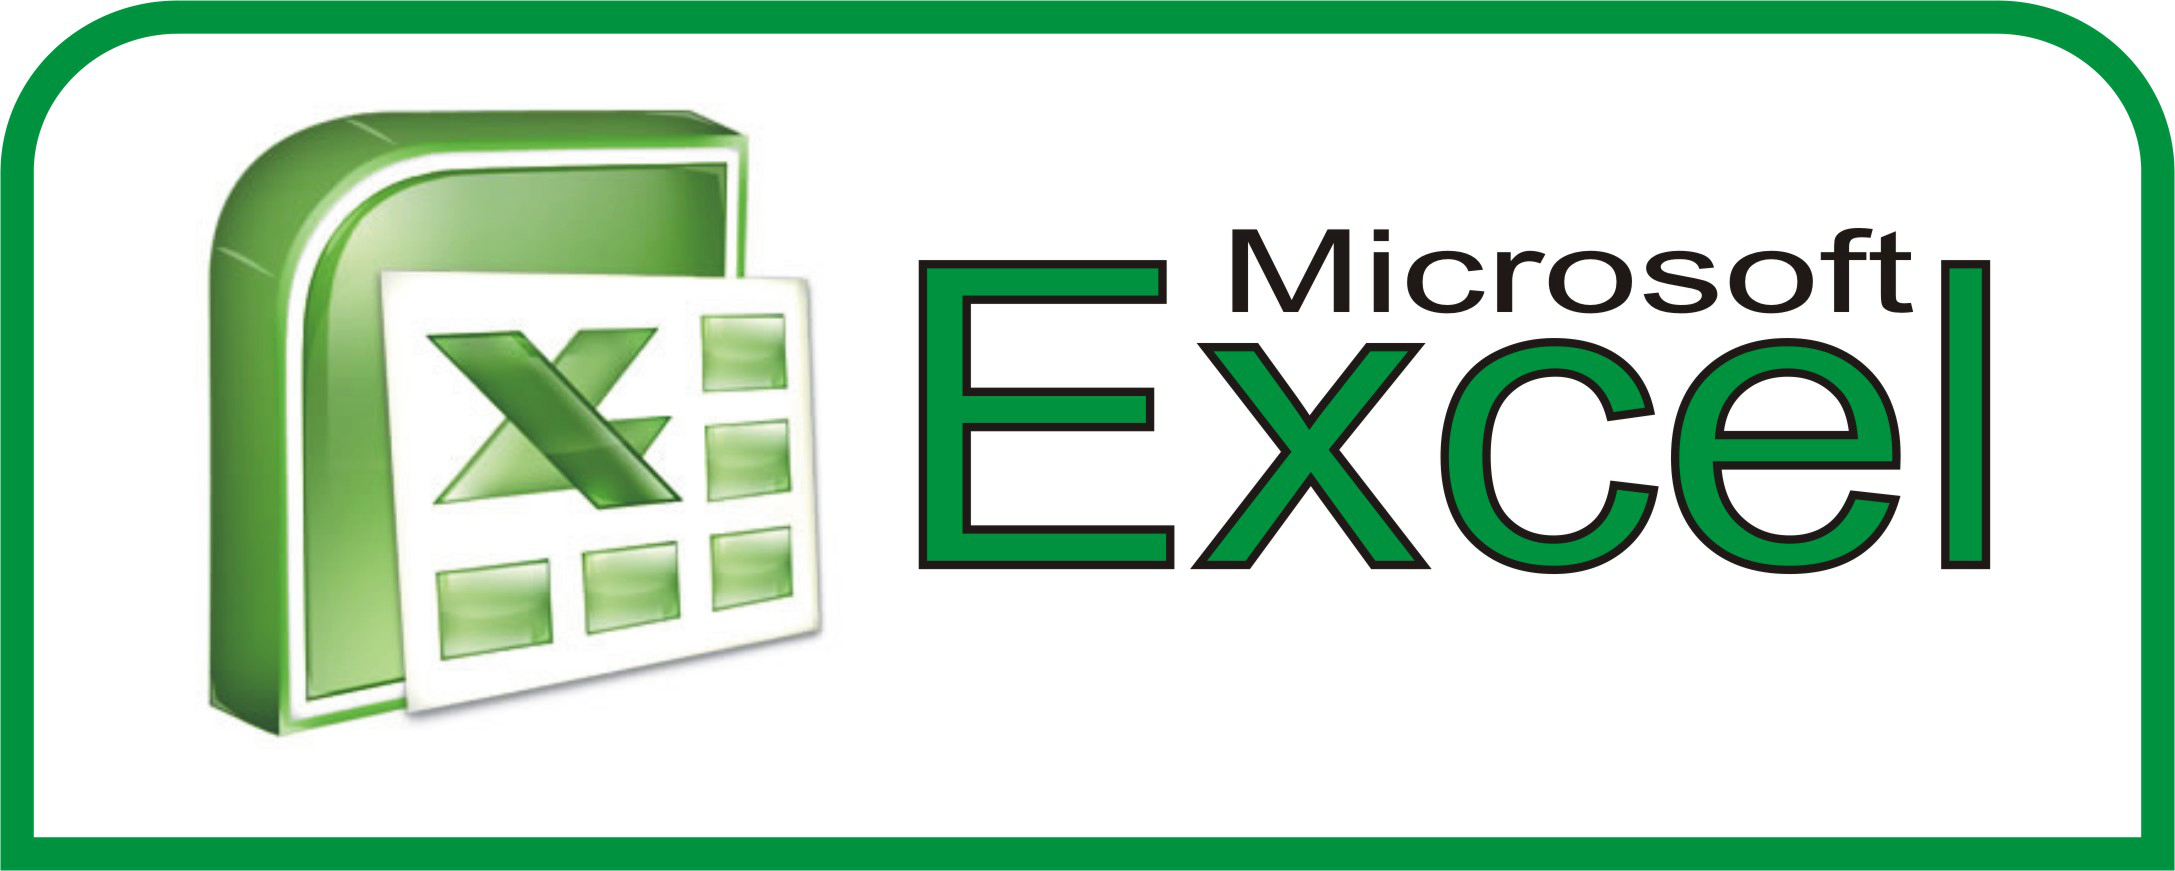 Ediblewildsus  Winsome  Excel Shortcuts You Probably Didnt Know About  Techdissected With Marvelous Population Variance In Excel Besides Free Microsoft Excel Classes Online Furthermore Splitting Cells Excel With Breathtaking Linear Regression In Excel  Also Excel Chart Select Data In Addition Free Online Microsoft Excel And Create A Table Excel As Well As Excel Online Classes Free Additionally Online Free Excel Course From Techdissectedcom With Ediblewildsus  Marvelous  Excel Shortcuts You Probably Didnt Know About  Techdissected With Breathtaking Population Variance In Excel Besides Free Microsoft Excel Classes Online Furthermore Splitting Cells Excel And Winsome Linear Regression In Excel  Also Excel Chart Select Data In Addition Free Online Microsoft Excel From Techdissectedcom